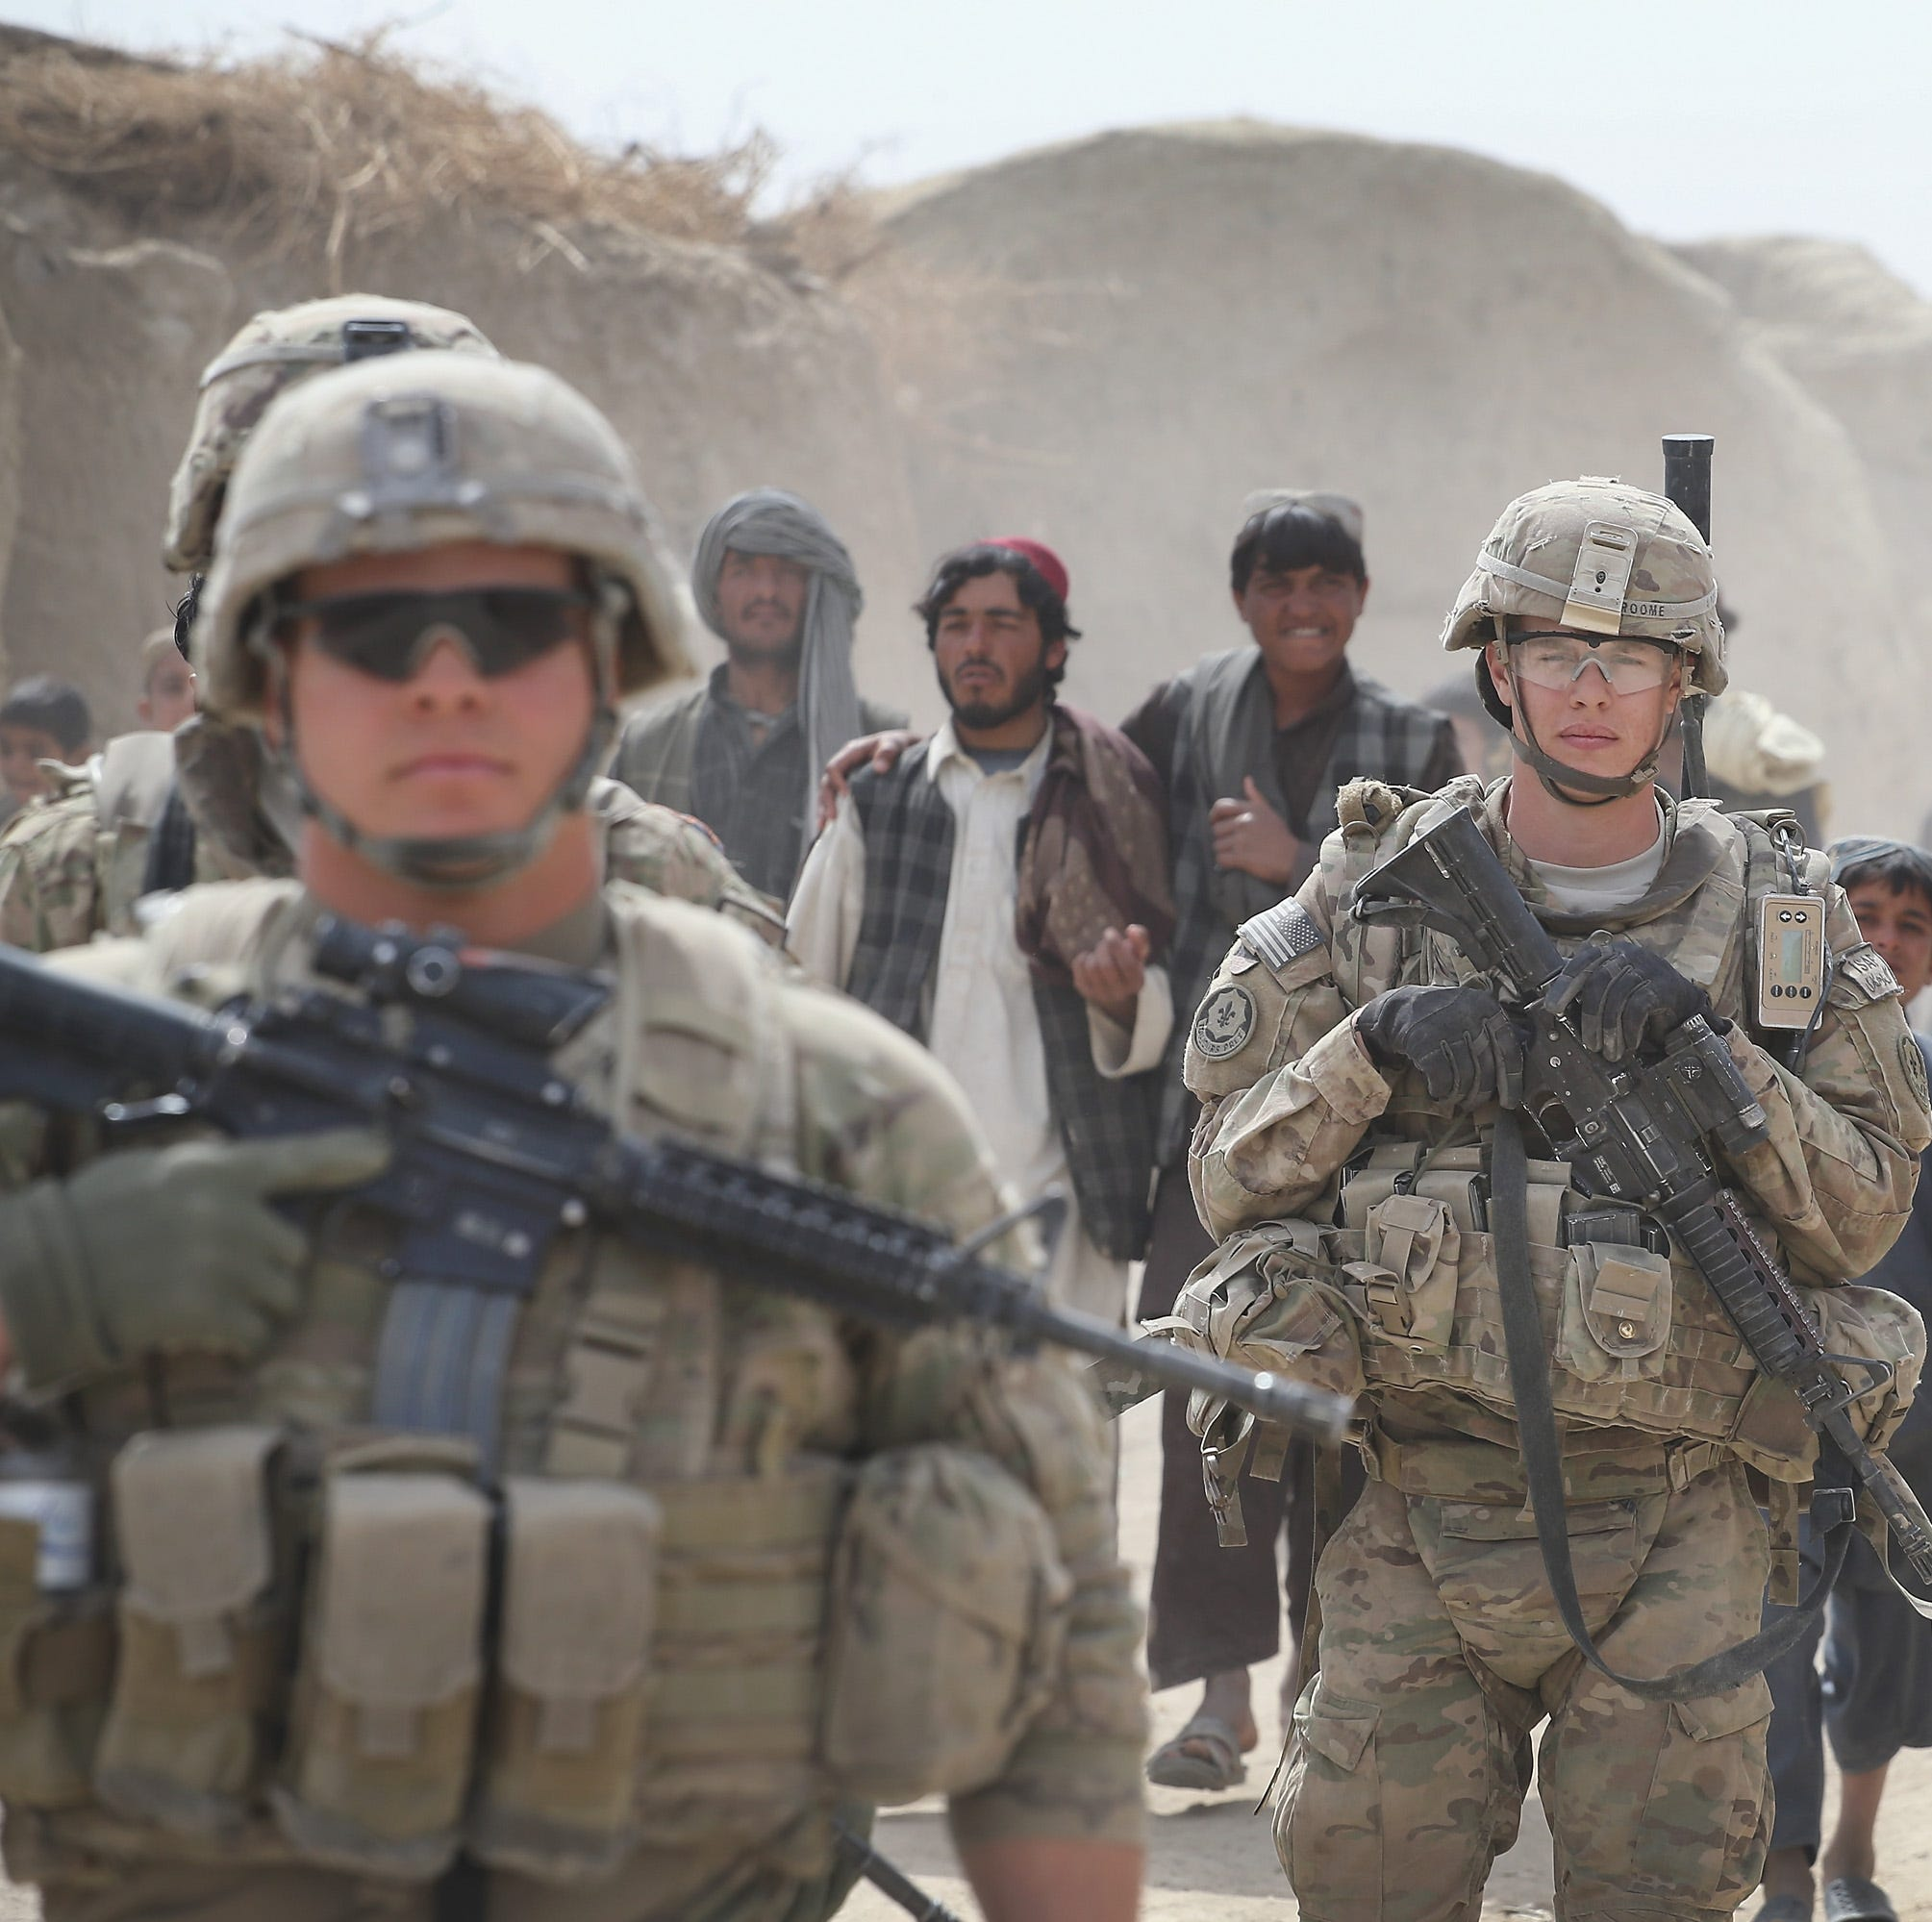 Afghanistan may be a mess if US troops leave; they should leave anyway. Trump is right.